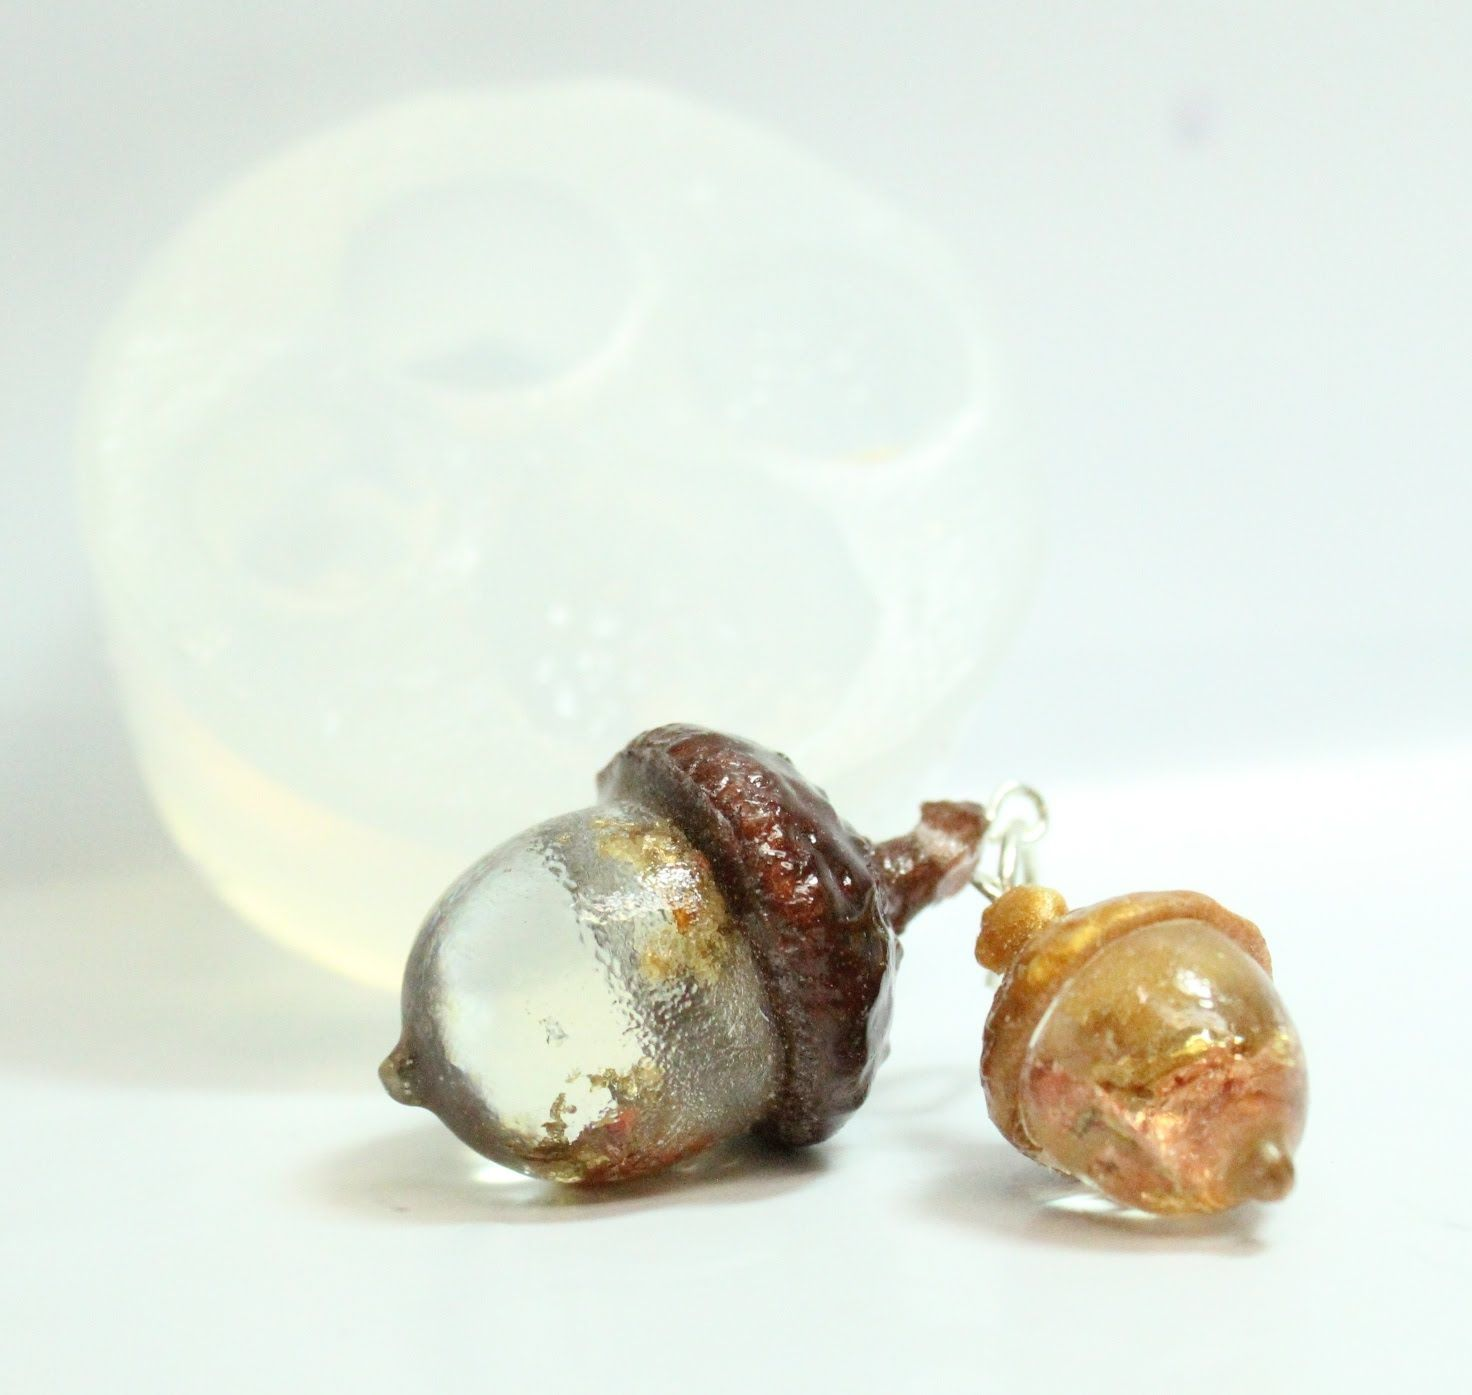 ACORN MOLD CREATE YOUR OWN RESIN PENDANT JEWELRY CLEAR SILICONE MOLD MP114